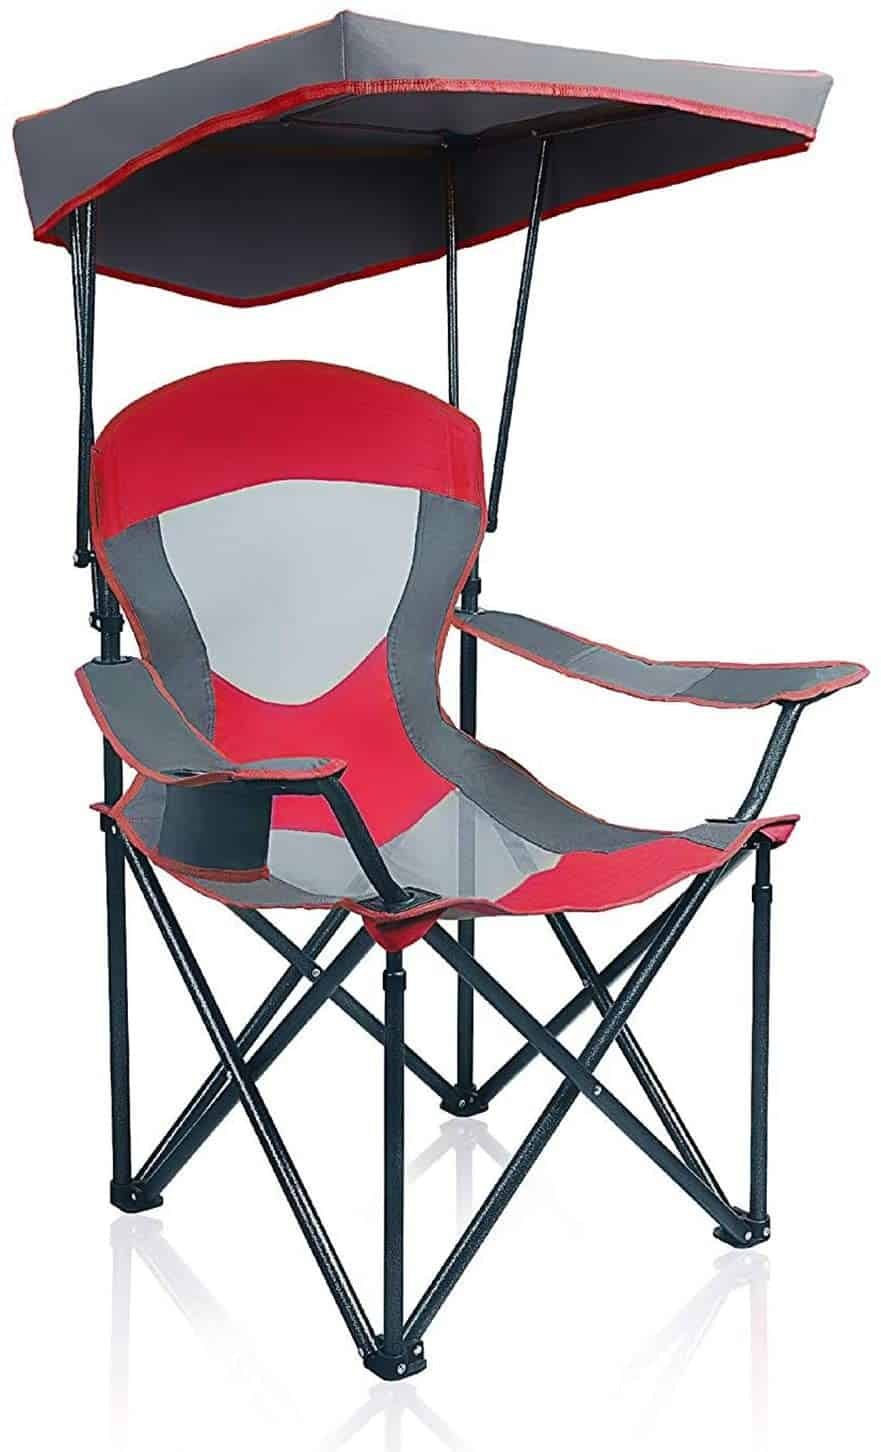 5. ALPHA CAMP Mesh Canopy Folding Camping Chair